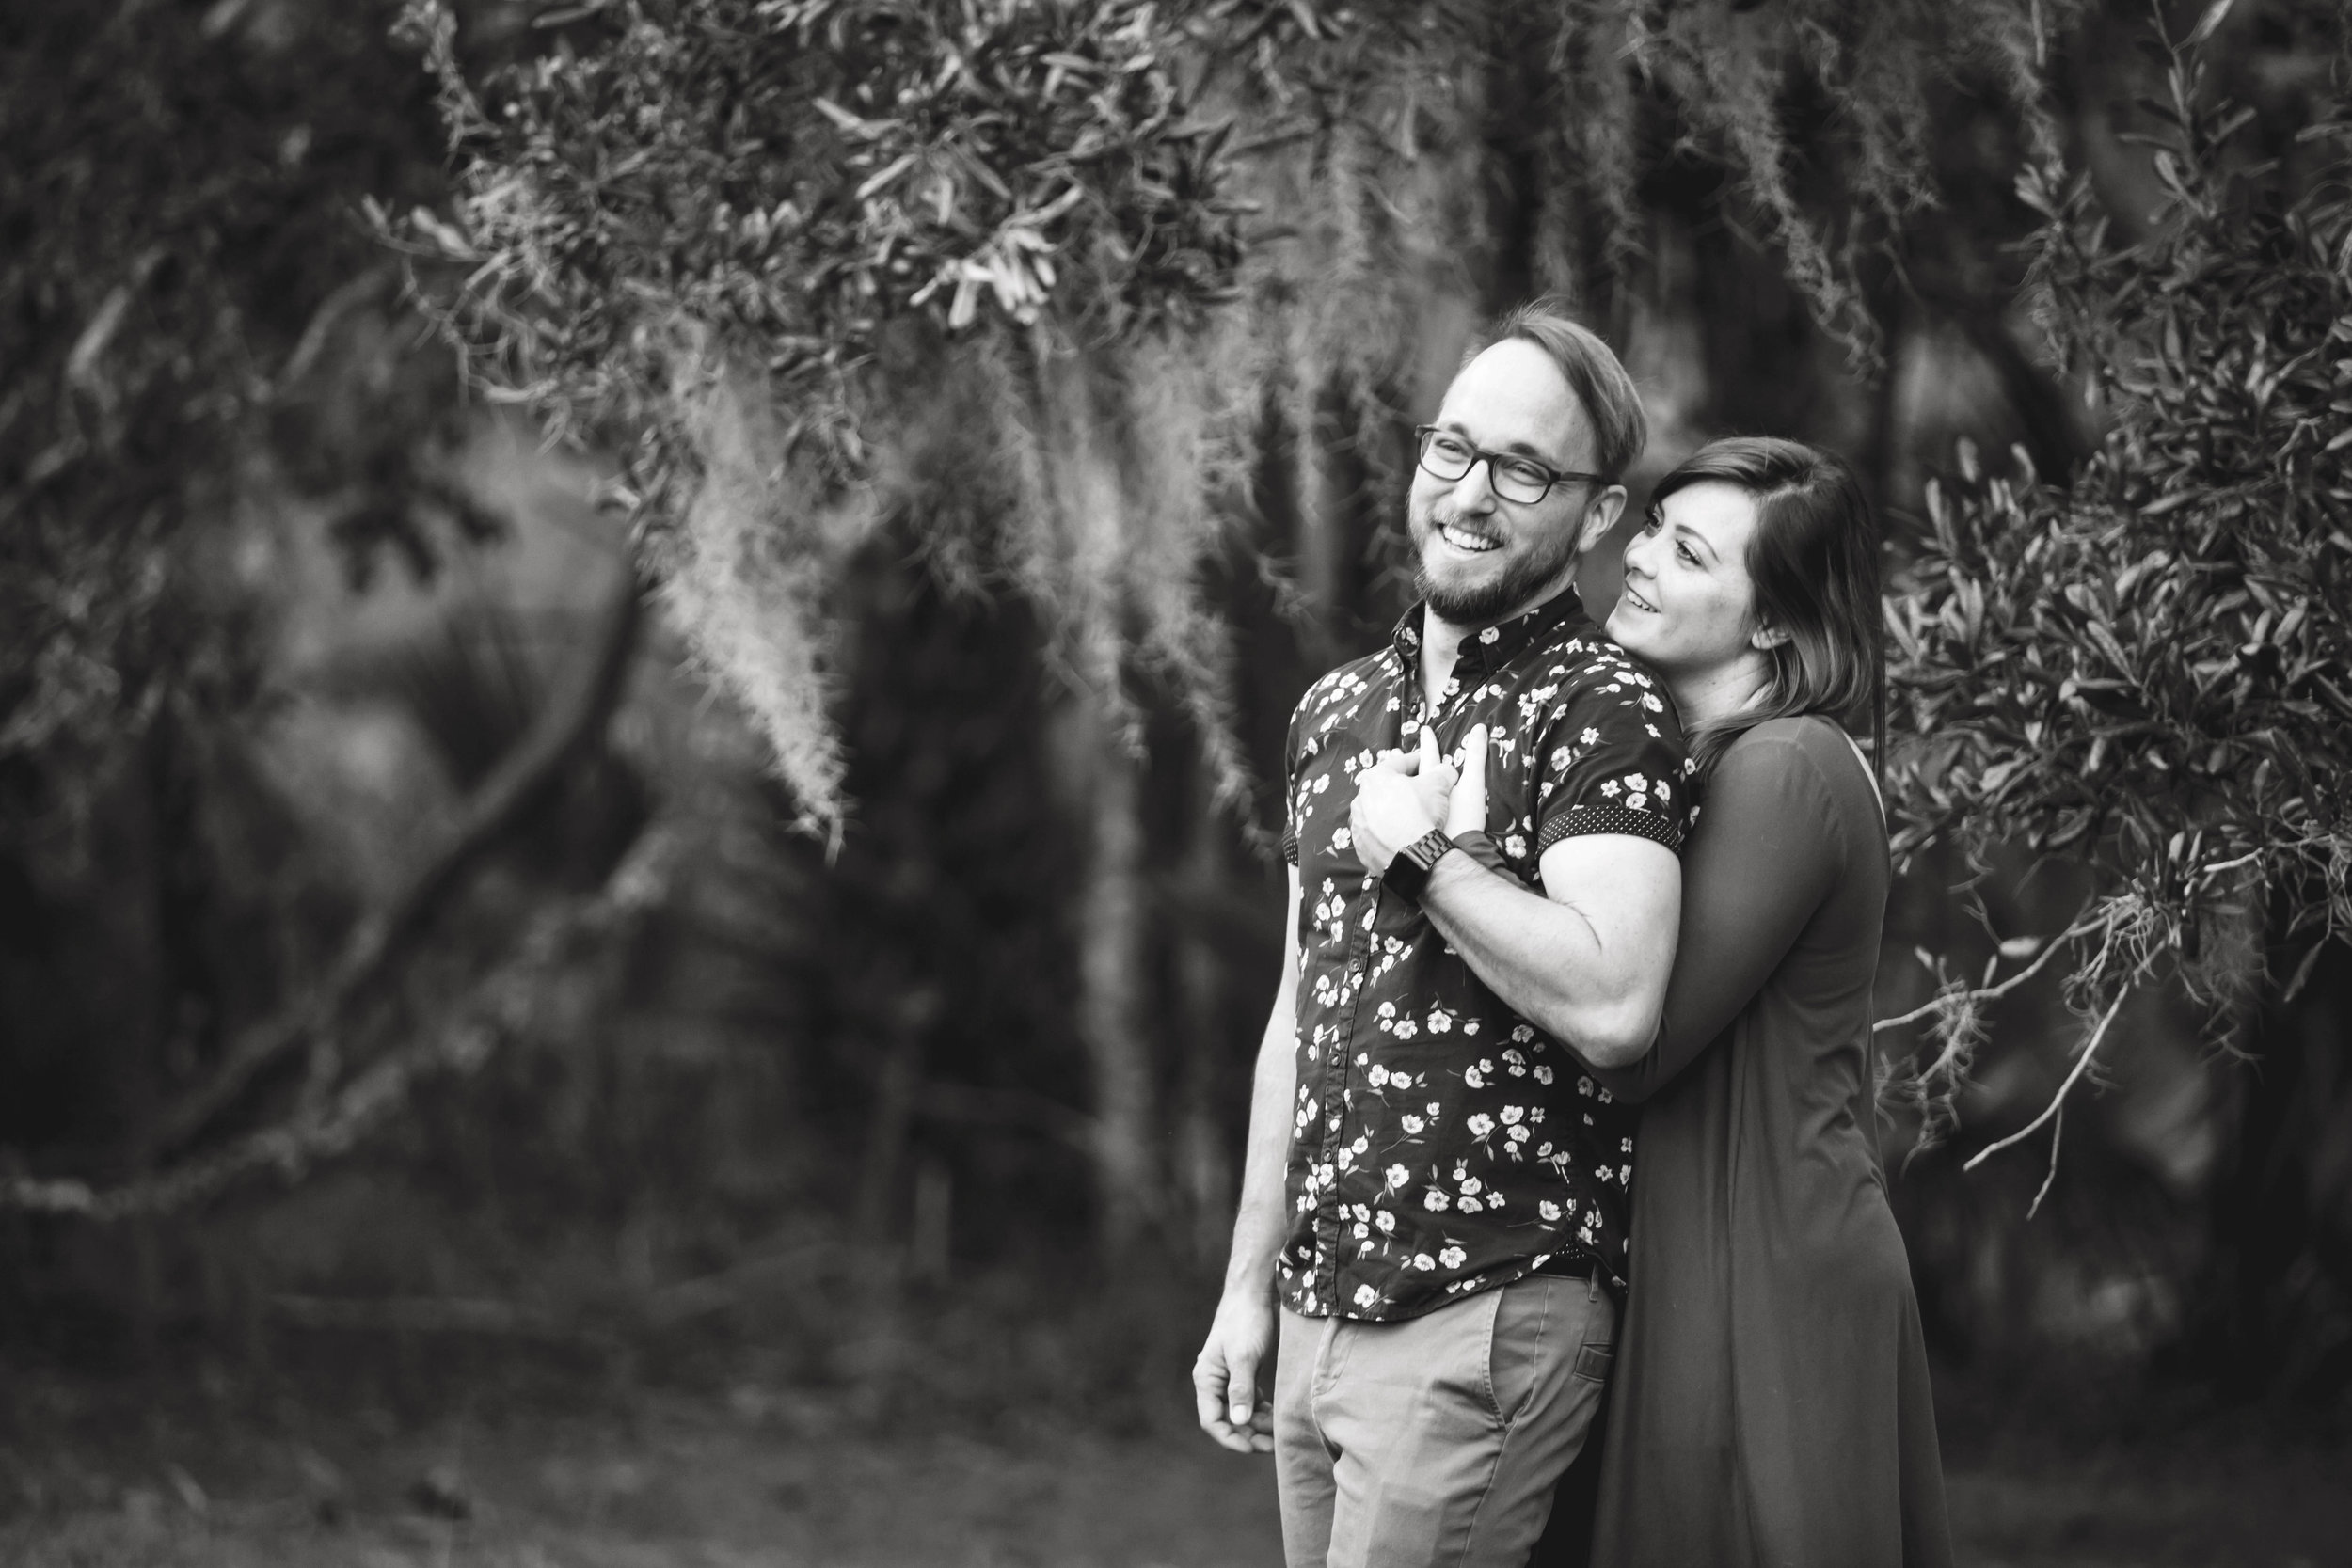 Marble_Falls_Anniversary_Photographer_Jenna_Petty_Ormond_Beach_Florida_16.jpg